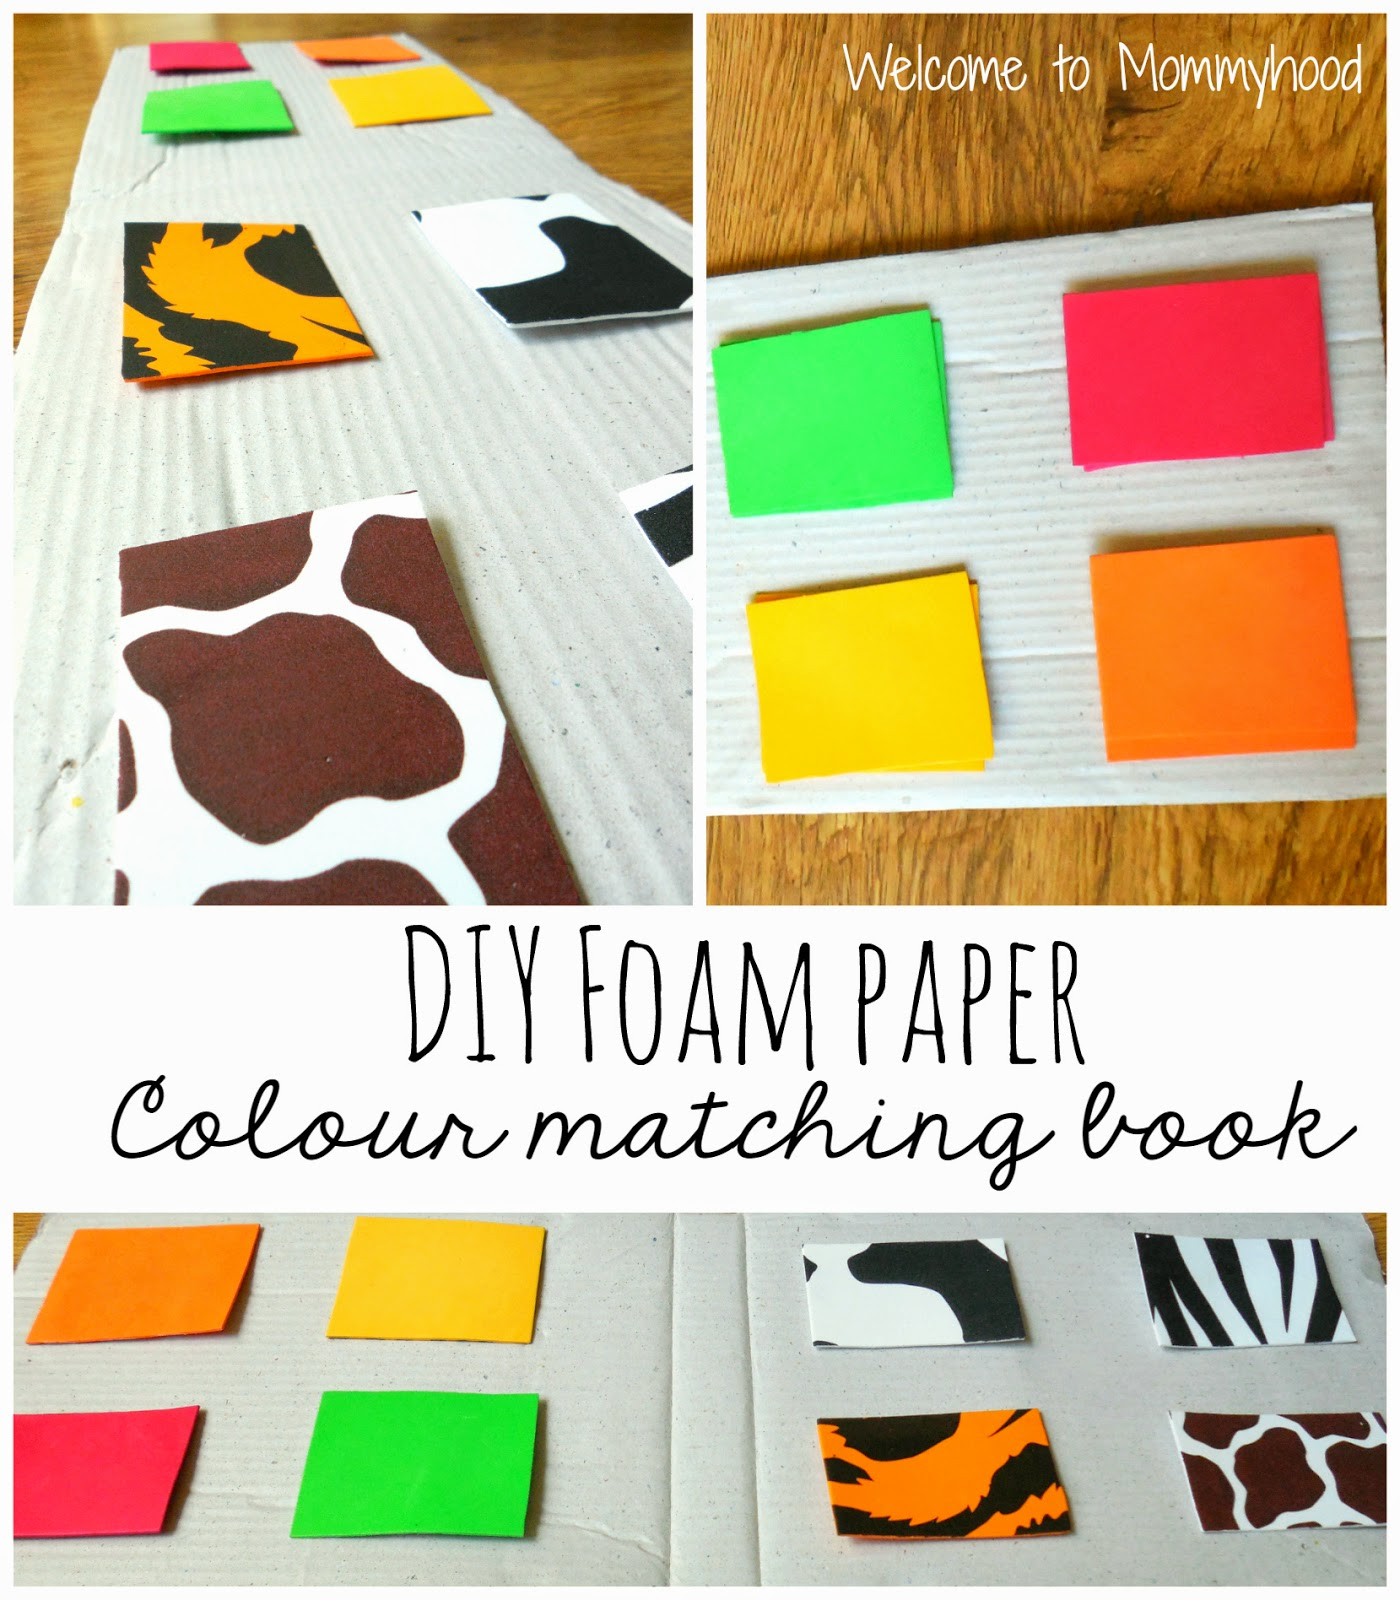 Color activities for toddlers: 4 easy activities to help toddlers learn colors, #montessori, #totschool